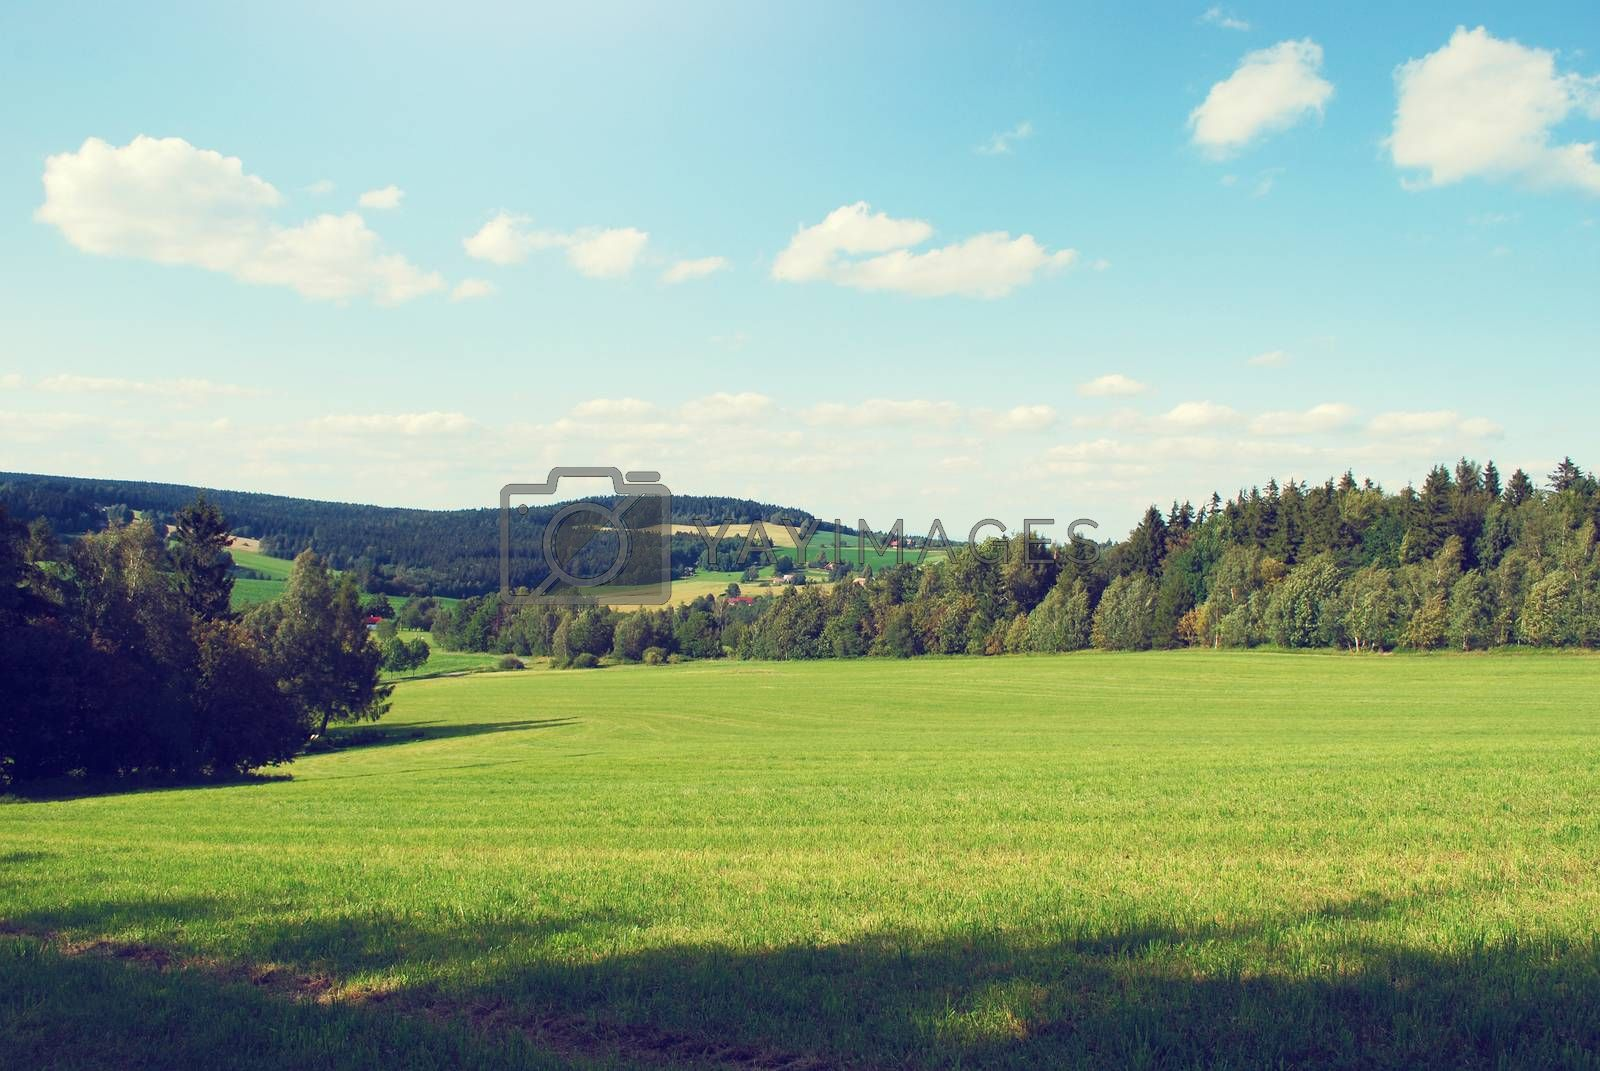 summer landscape in retro colors by sarkao